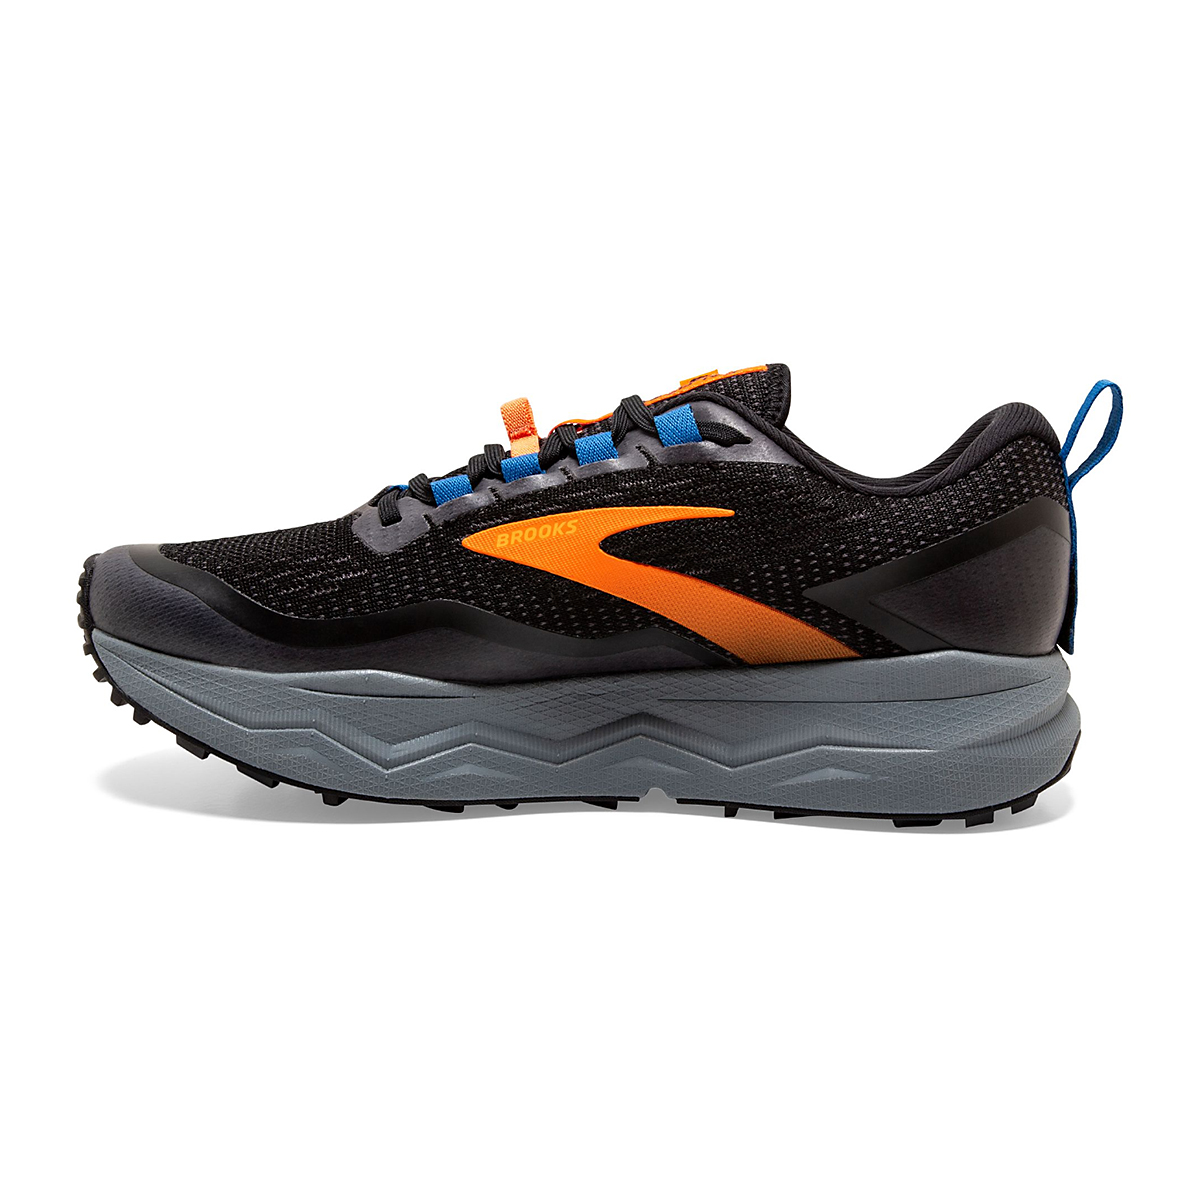 Men's Brooks Caldera 5 Trail Running Shoe  - Color: Black/Orange  - Size: 7 - Width: Regular, Black/Orange, large, image 2